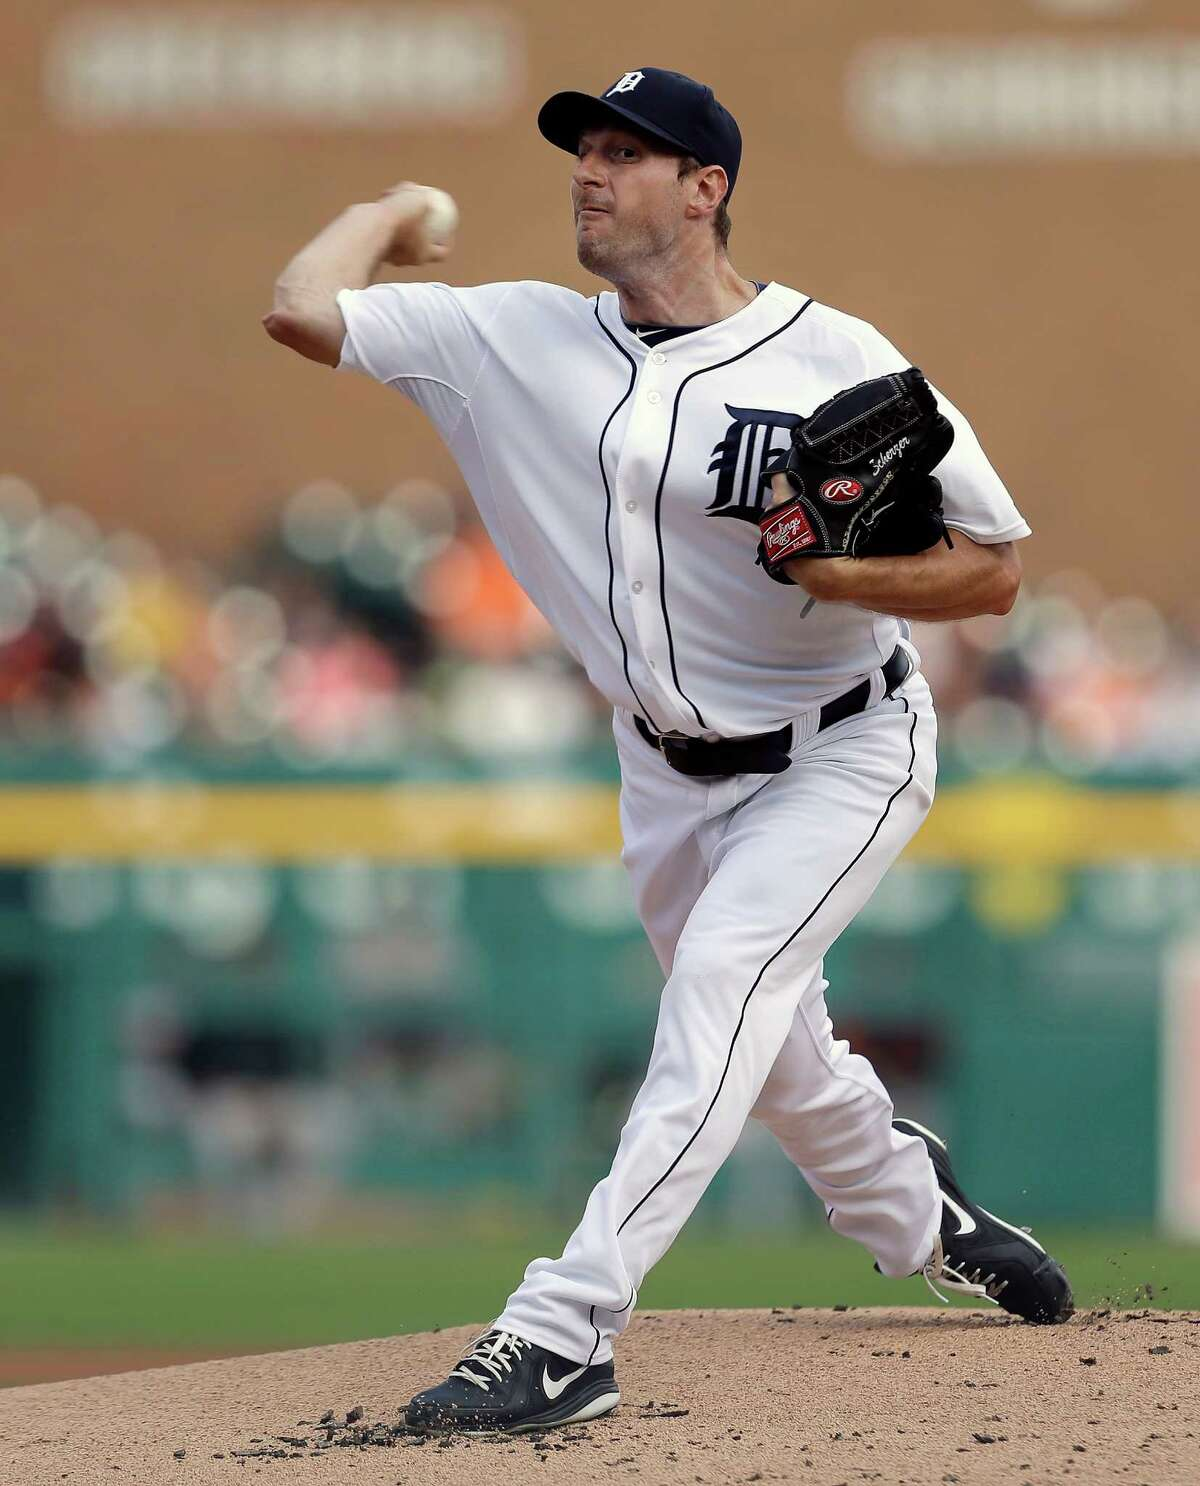 FILE - In this June 17, 2013, file photo, Detroit Tigers pitcher Max Scherzer throws to a Baltimore Orioles batter during a baseball game in Detroit. Scherzer won the American League Cy Young Award on Wednesday, Nov. 13, 2013. (AP Photo/Paul Sancya, File) ORG XMIT: NY179